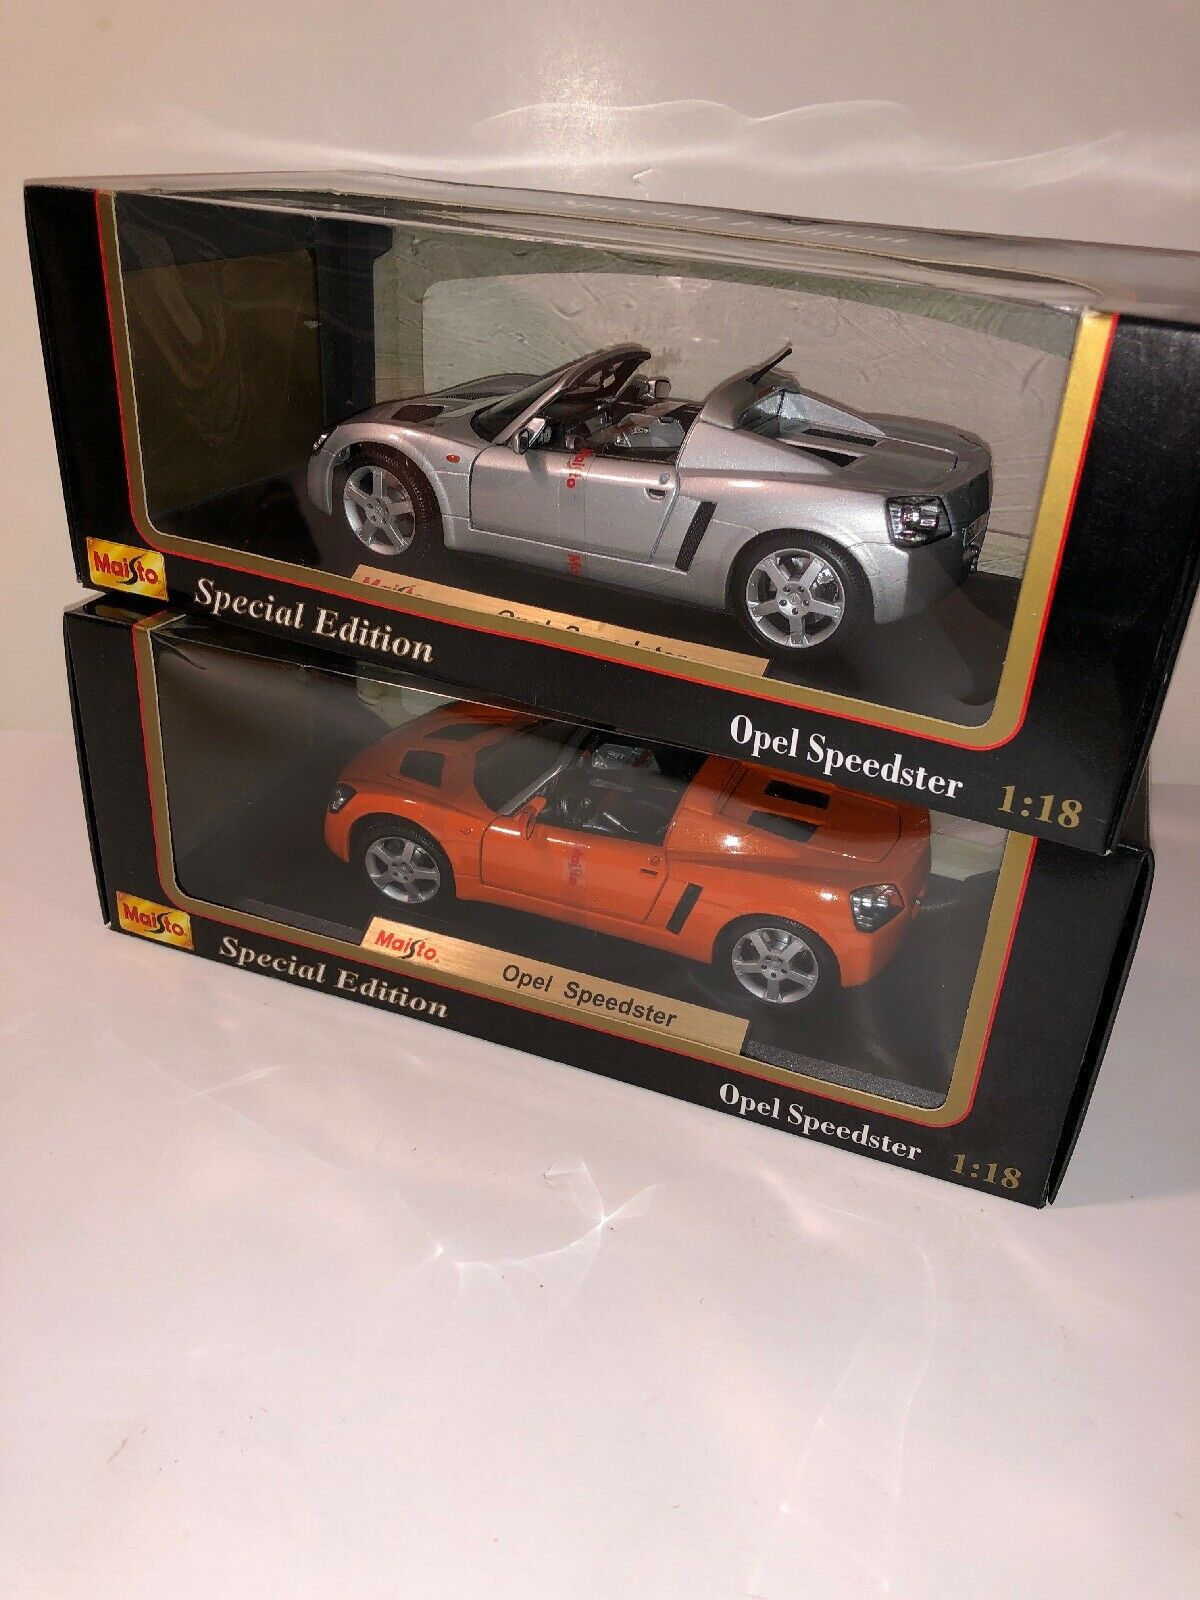 Maisto Opel speedsters 2 Pair Of 1 18th Scale Diecast Model Cars orange & Silver